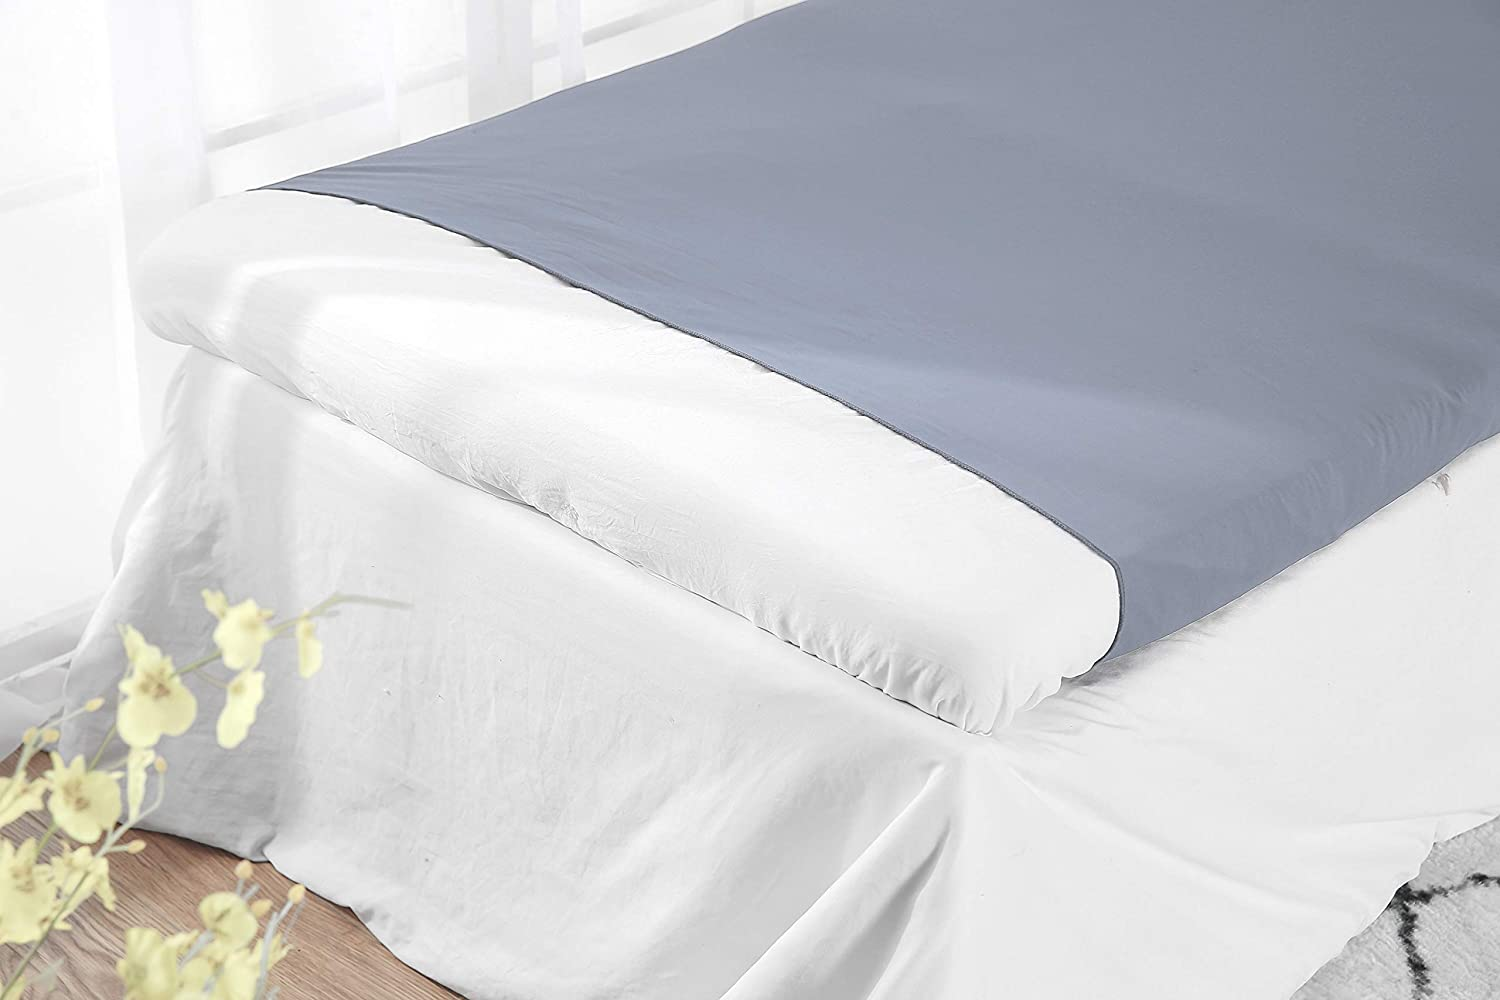 Adjustable Queen Size Royal Blue BUZIO Pouch Sensory Bed Sheet for Kids Compression Alternative to Heavy Blanket -Breathable Stretchy